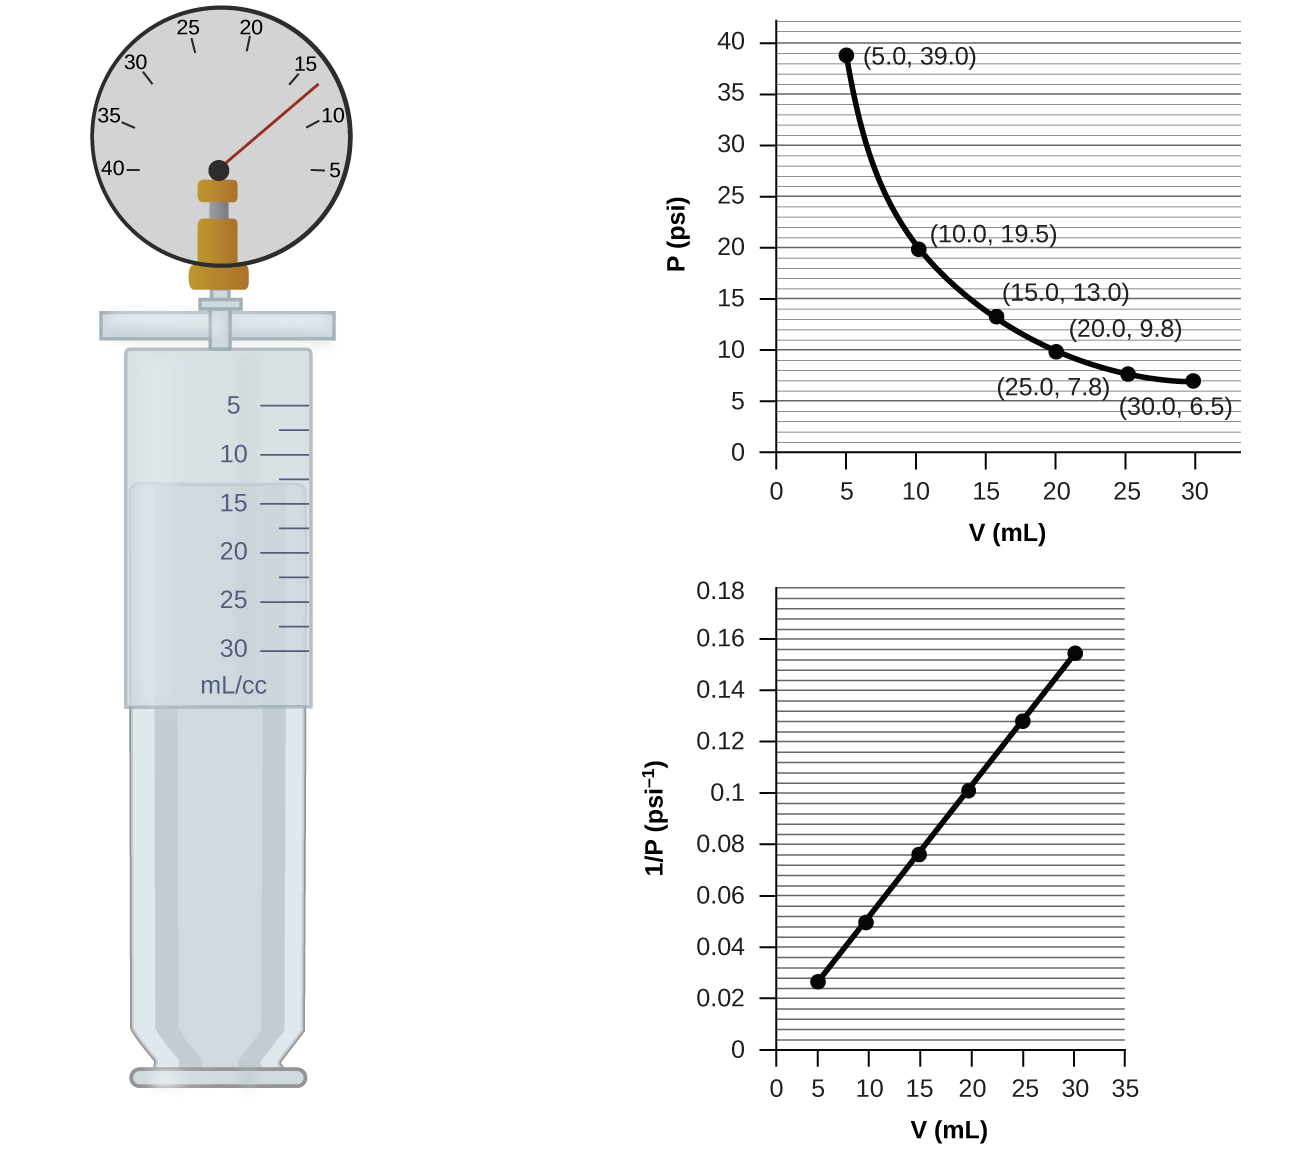 """This figure contains a diagram and two graphs. The diagram shows a syringe labeled with a scale in m l or c c with multiples of 5 labeled beginning at 5 and ending at 30. The markings halfway between these measurements are also provided. Attached at the top of the syringe is a pressure gauge with a scale marked by fives from 40 on the left to 5 on the right. The gauge needle rests between 10 and 15, slightly closer to 15. The syringe plunger position indicates a volume measurement about halfway between 10 and 15 m l or c c. The first graph is labeled """"V ( m L )"""" on the horizontal axis and """"P ( p s i )"""" on the vertical axis. Points are labeled at 5, 10, 15, 20, and 25 m L with corresponding values of 39.0, 19.5, 13.0, 9.8, and 6.5 p s i. The points are connected with a smooth curve that is declining at a decreasing rate of change. The second graph is labeled """"V ( m L )"""" on the horizontal axis and """"1 divided by P ( p s i )"""" on the vertical axis. The horizontal axis is labeled at multiples of 5, beginning at zero and extending up to 35 m L. The vertical axis is labeled by multiples of 0.02, beginning at 0 and extending up to 0.18. Six points indicated by black dots on this graph are connected with a black line segment showing a positive linear trend."""